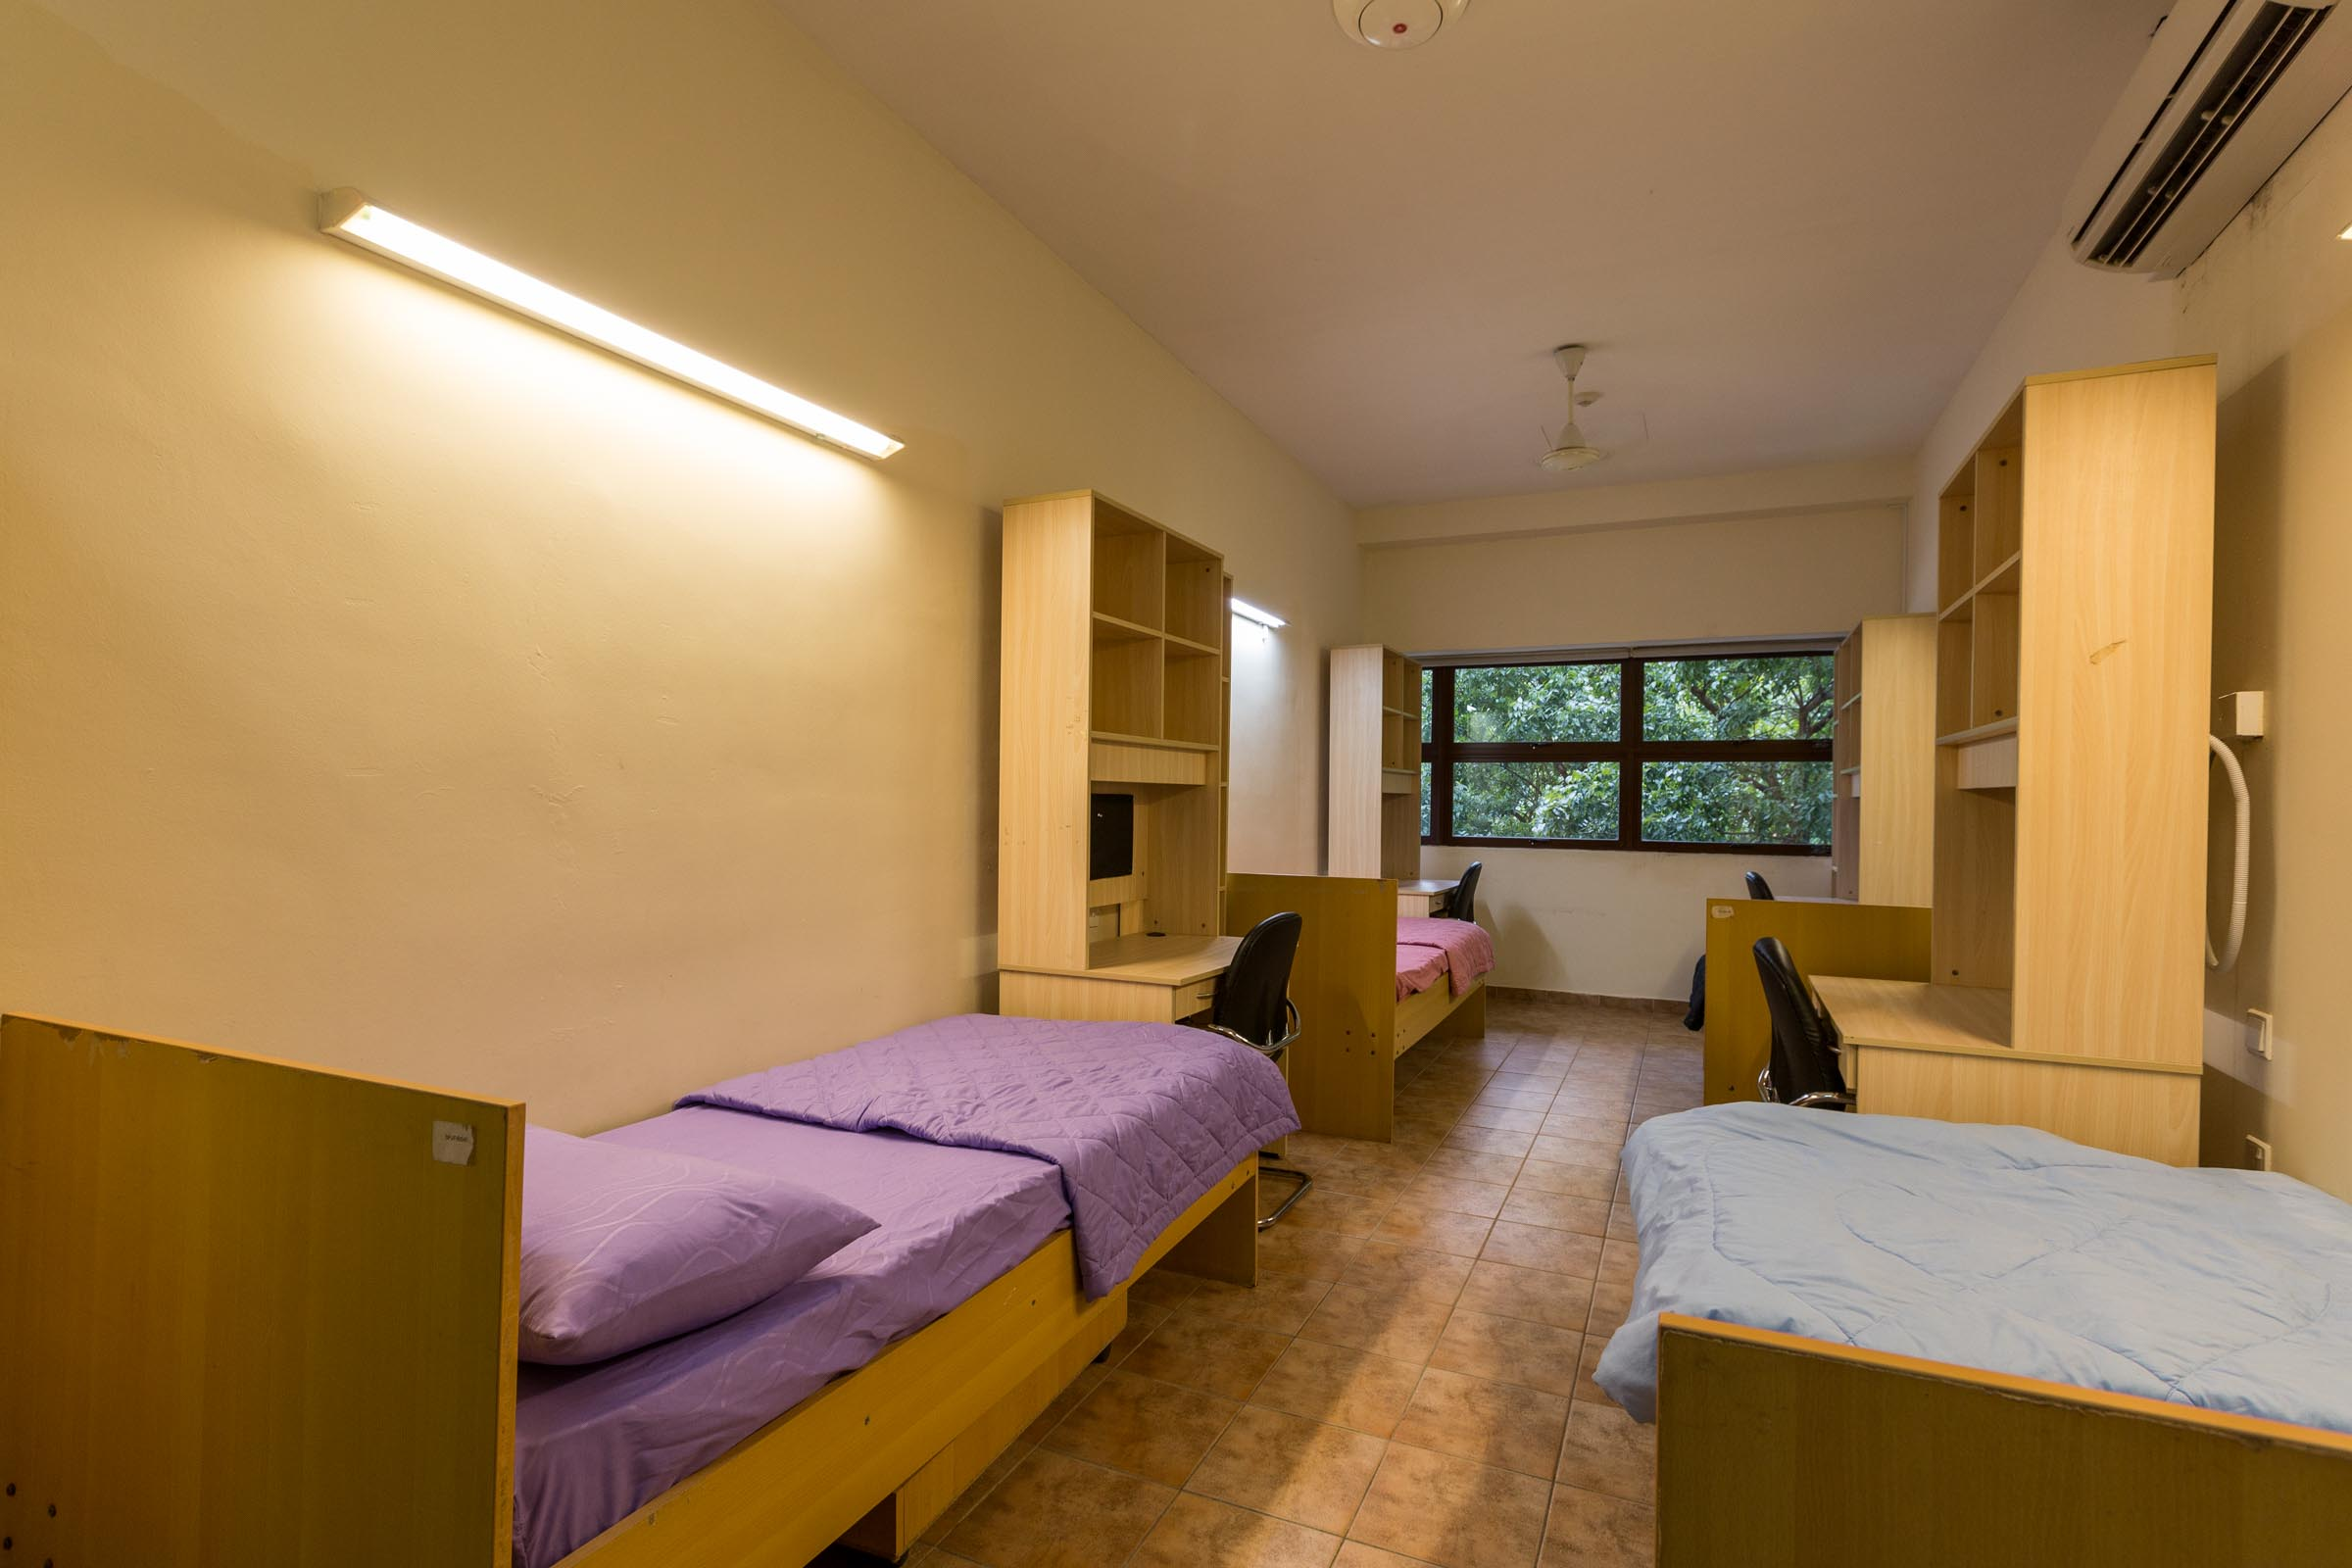 Singapore_accommodation_bedroom.jpg